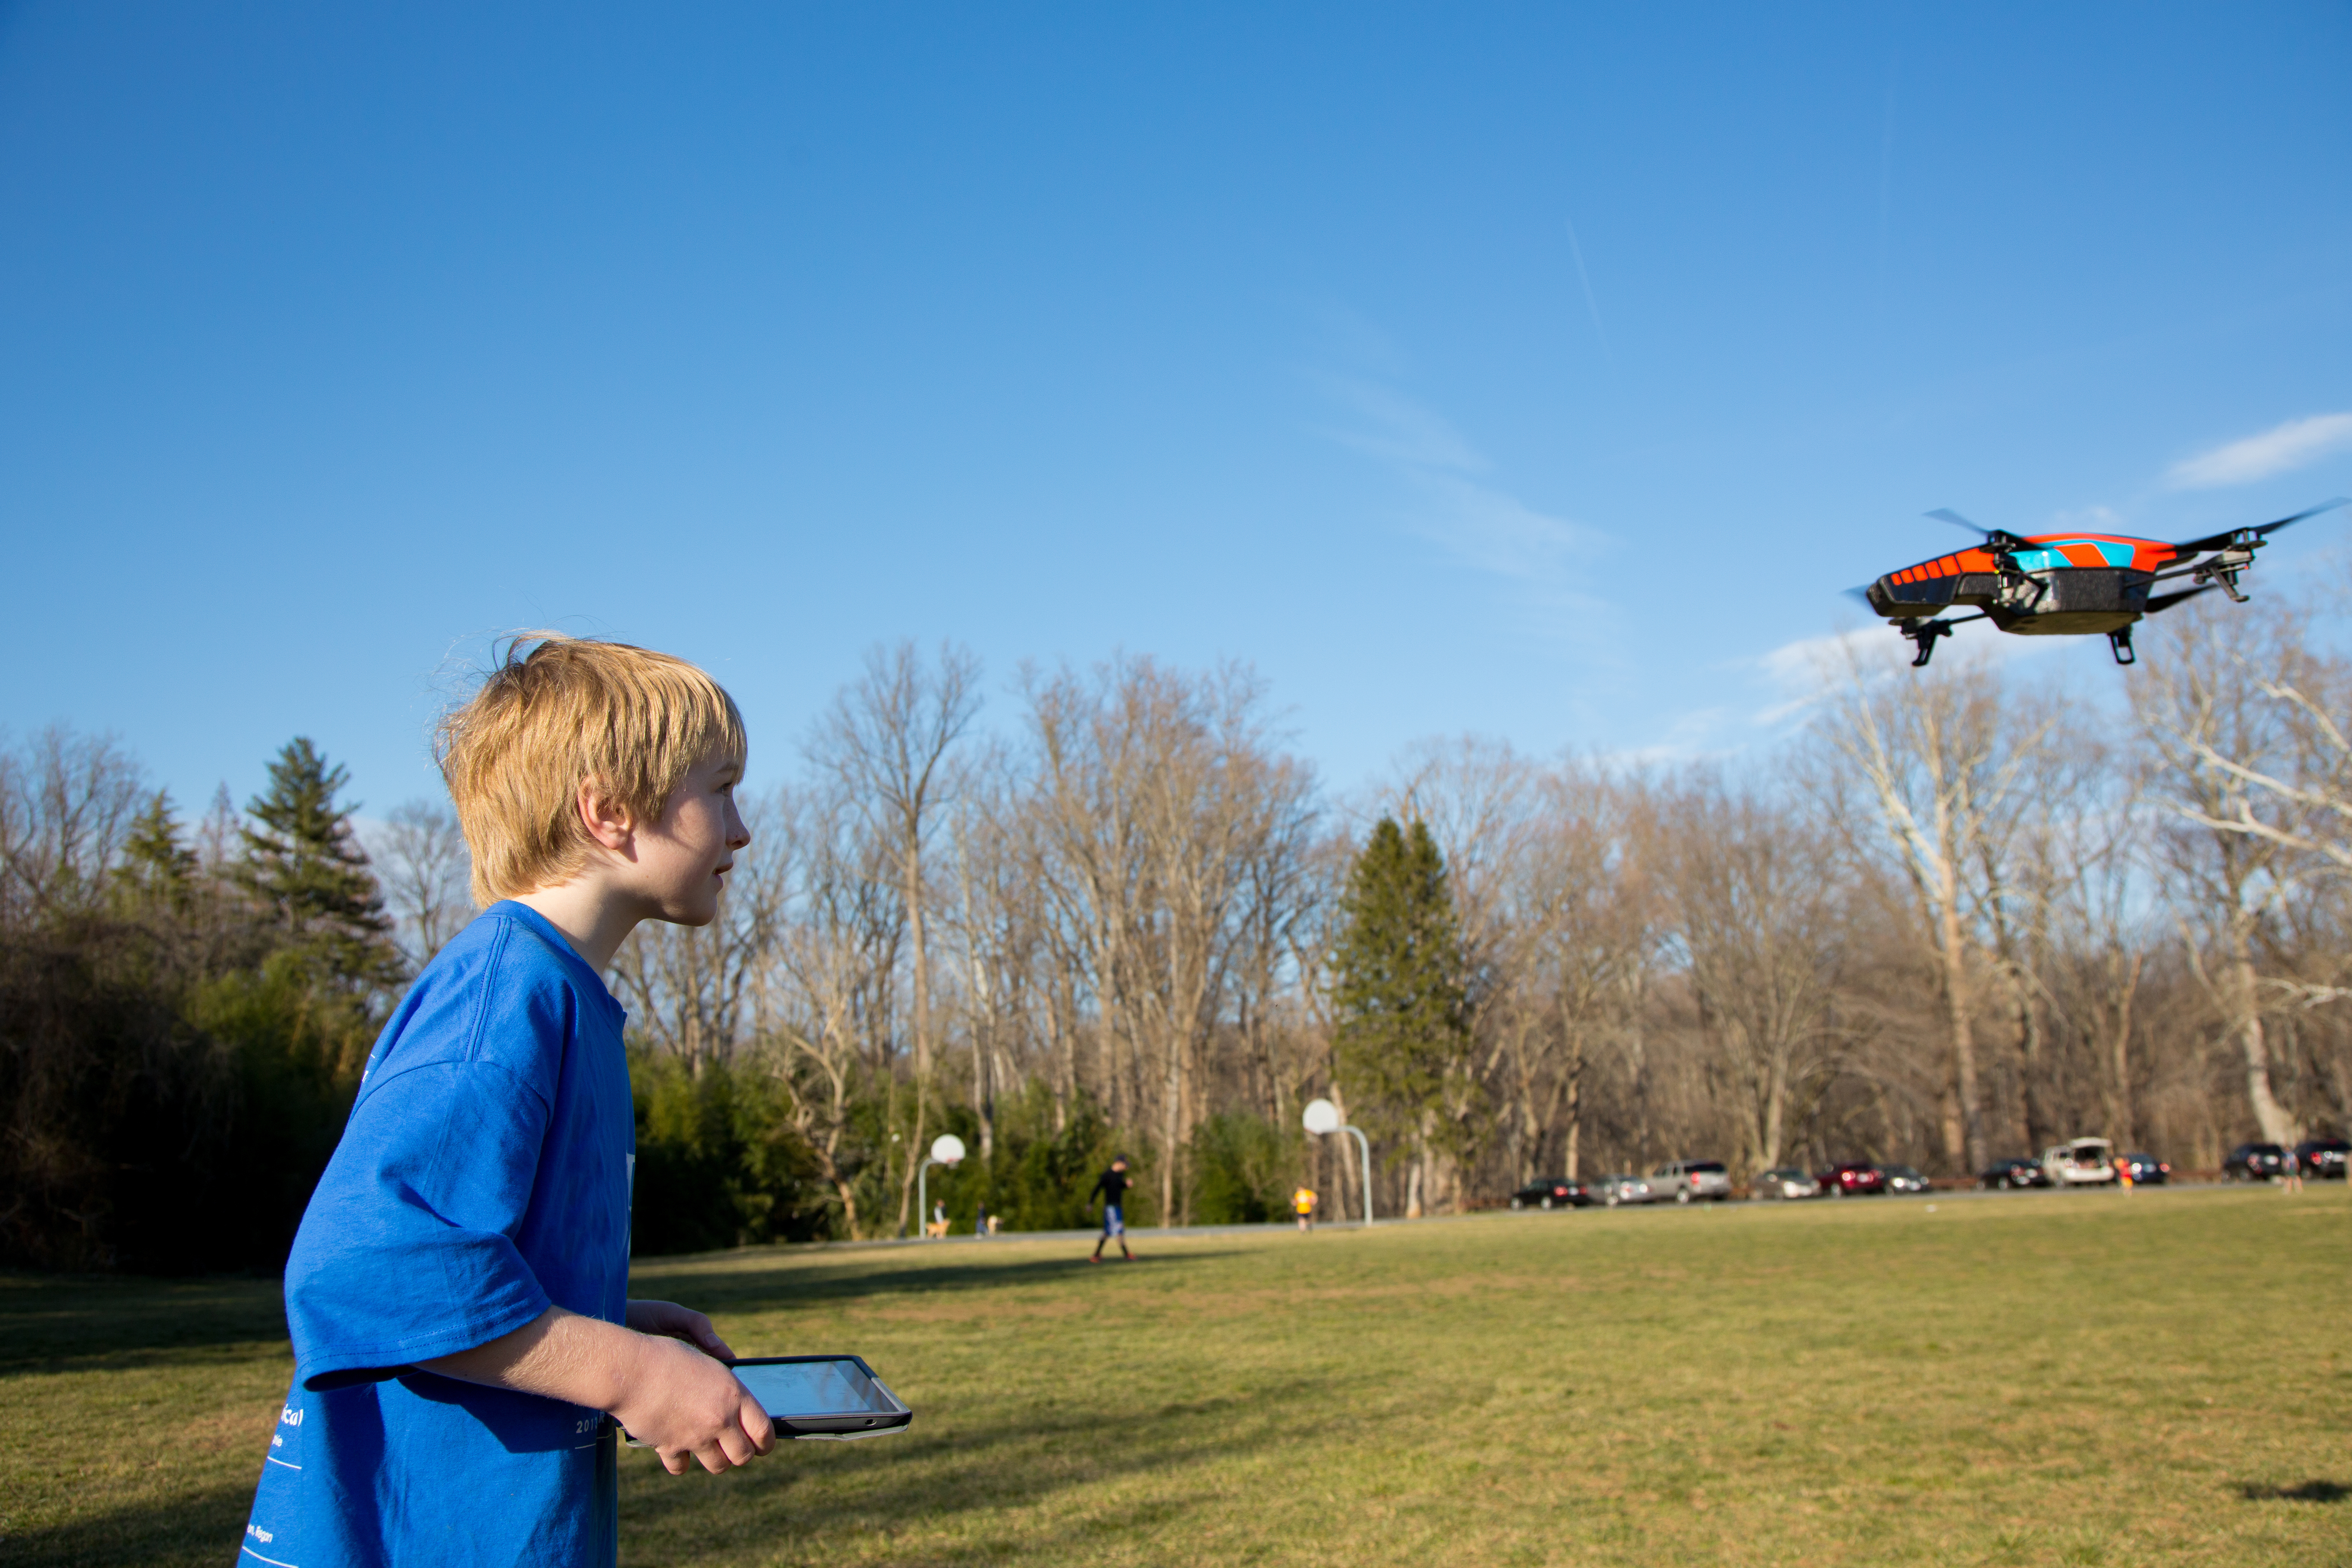 A nine year old boy flies his drone in a local park.